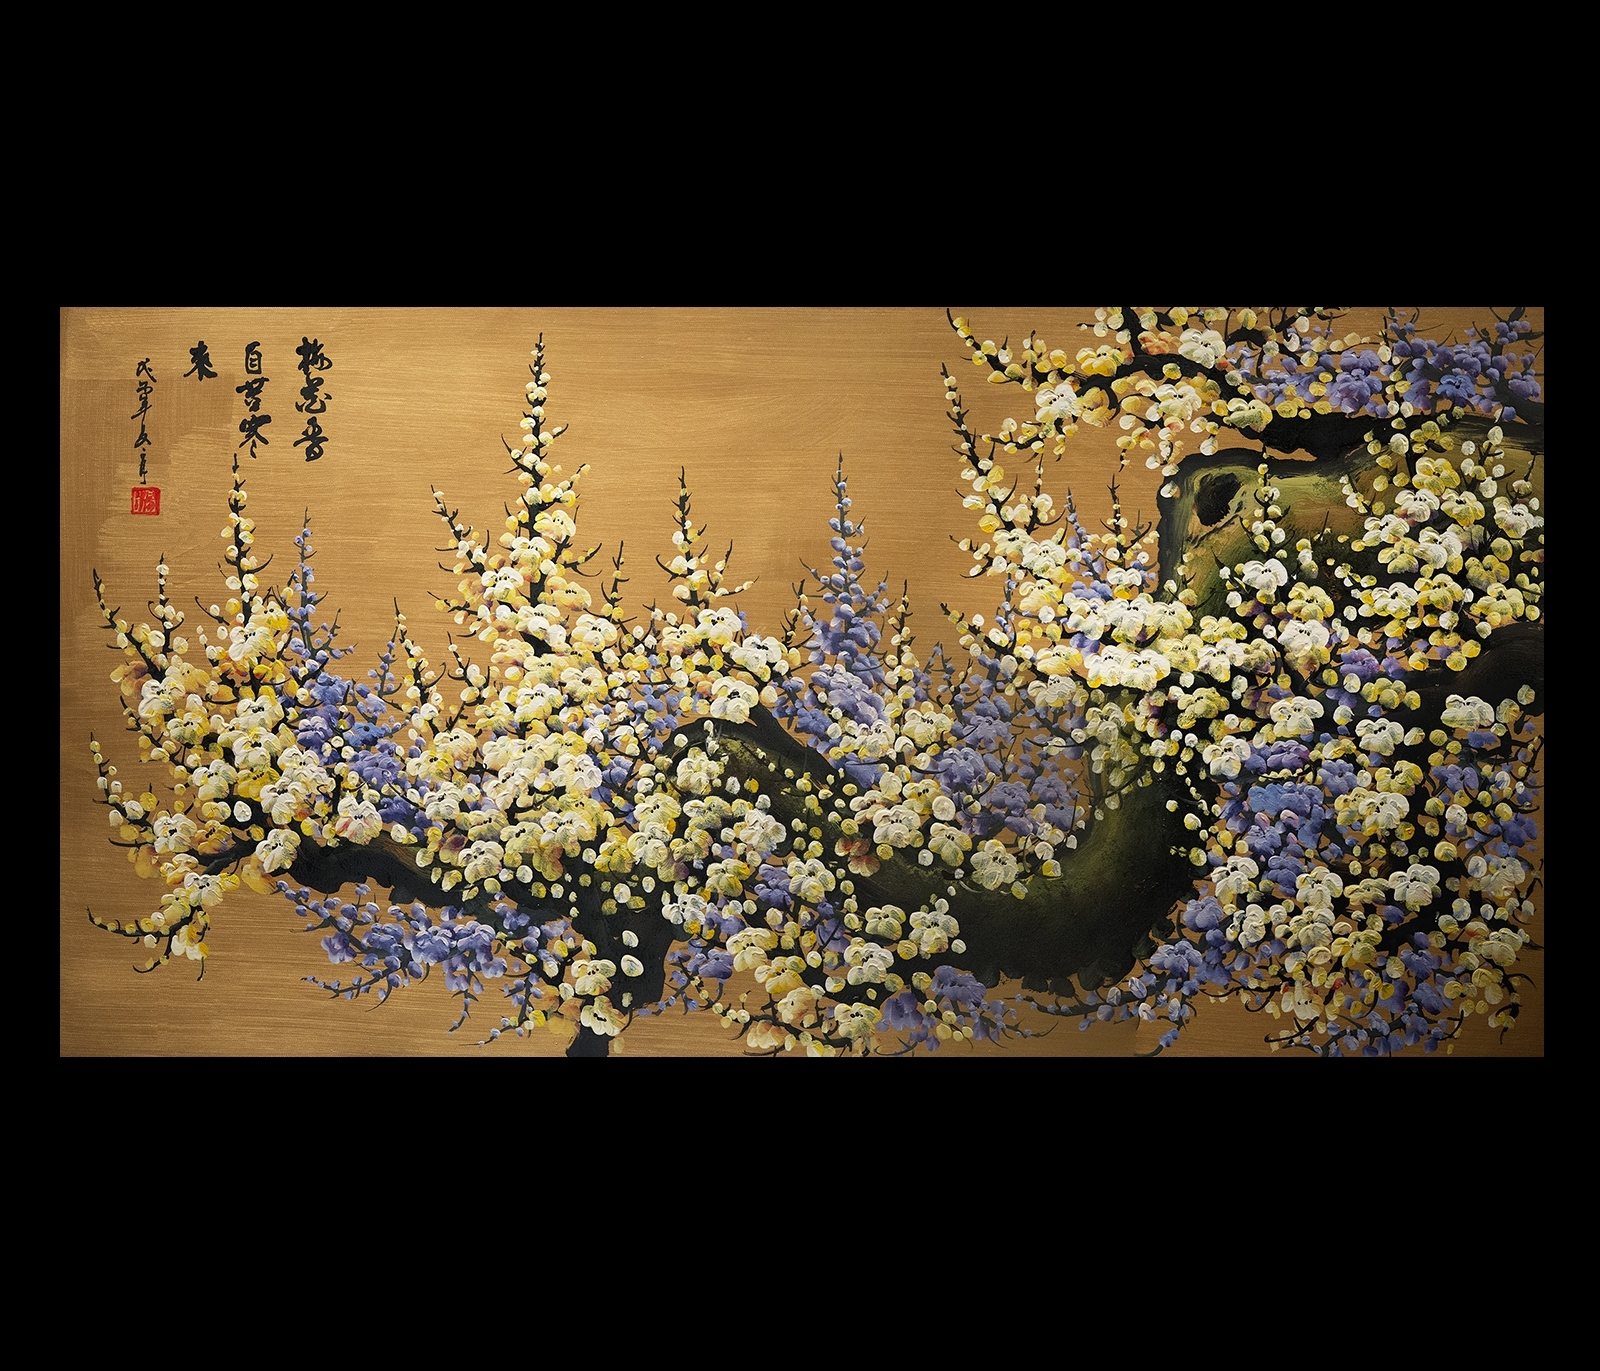 Canvas Wall Art Japanese Cherry Blossom Painting Feng Shui Intended For Most Recently Released Abstract Cherry Blossom Wall Art (View 8 of 20)